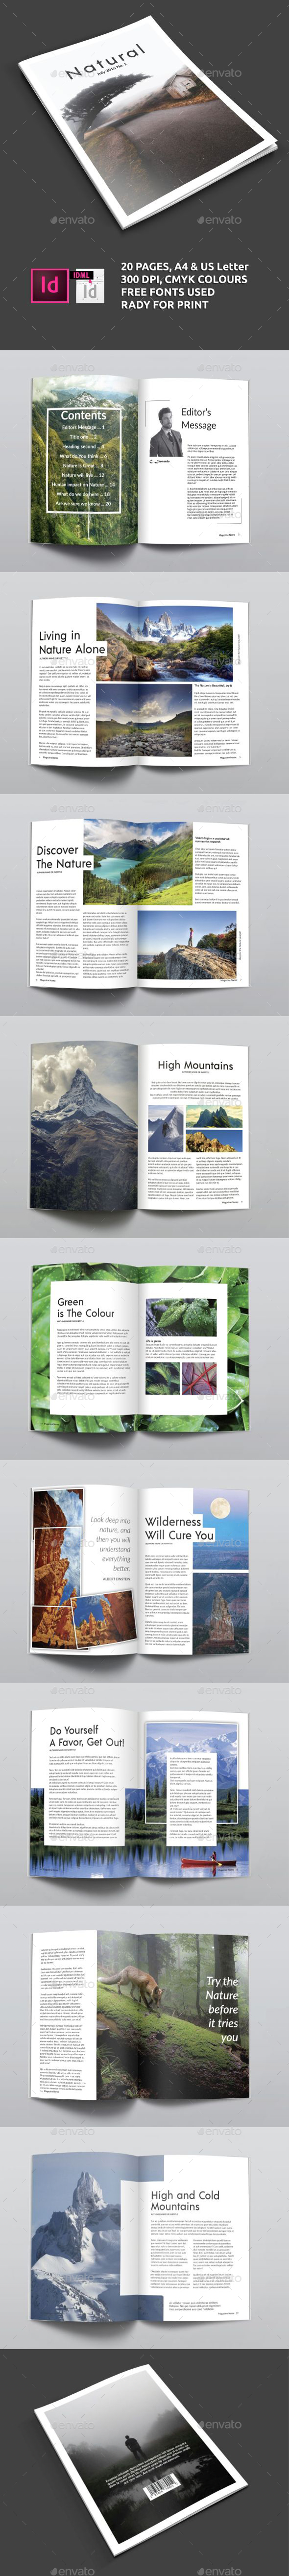 Clean Natural Magazine Template A4/US letter - Magazines Print Templates